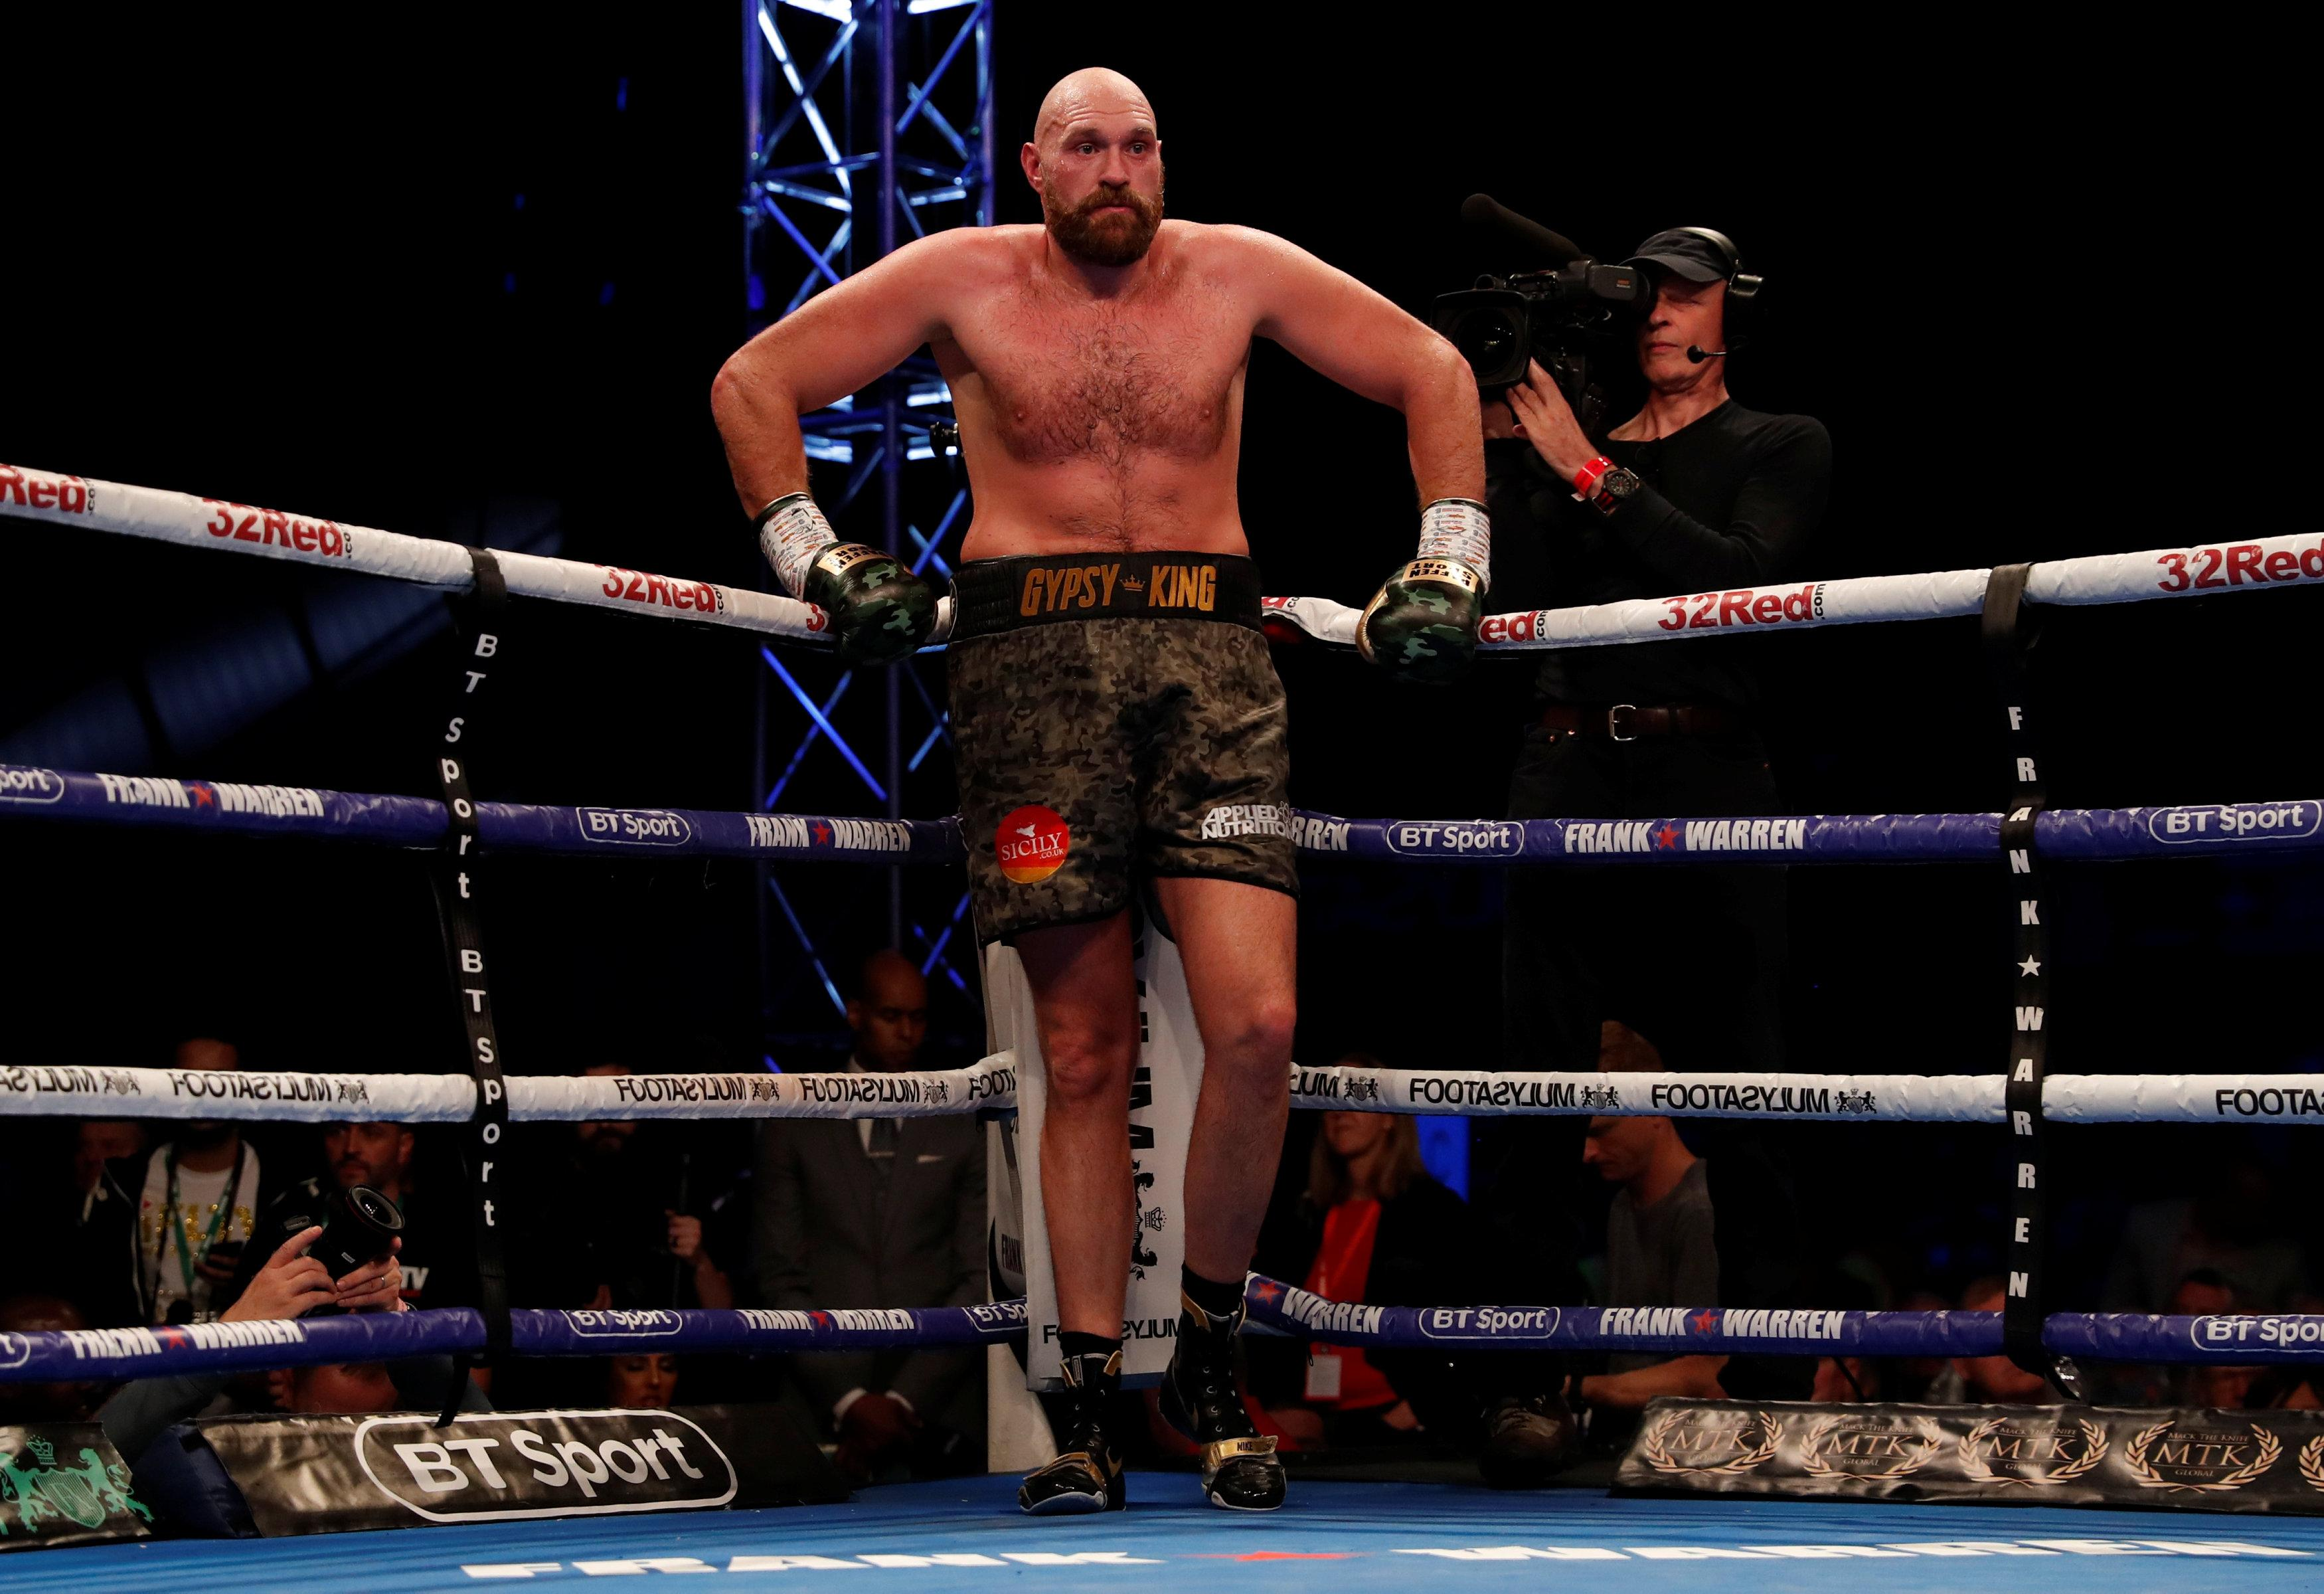 Tyson Fury used the ropes to good effect in his last fight